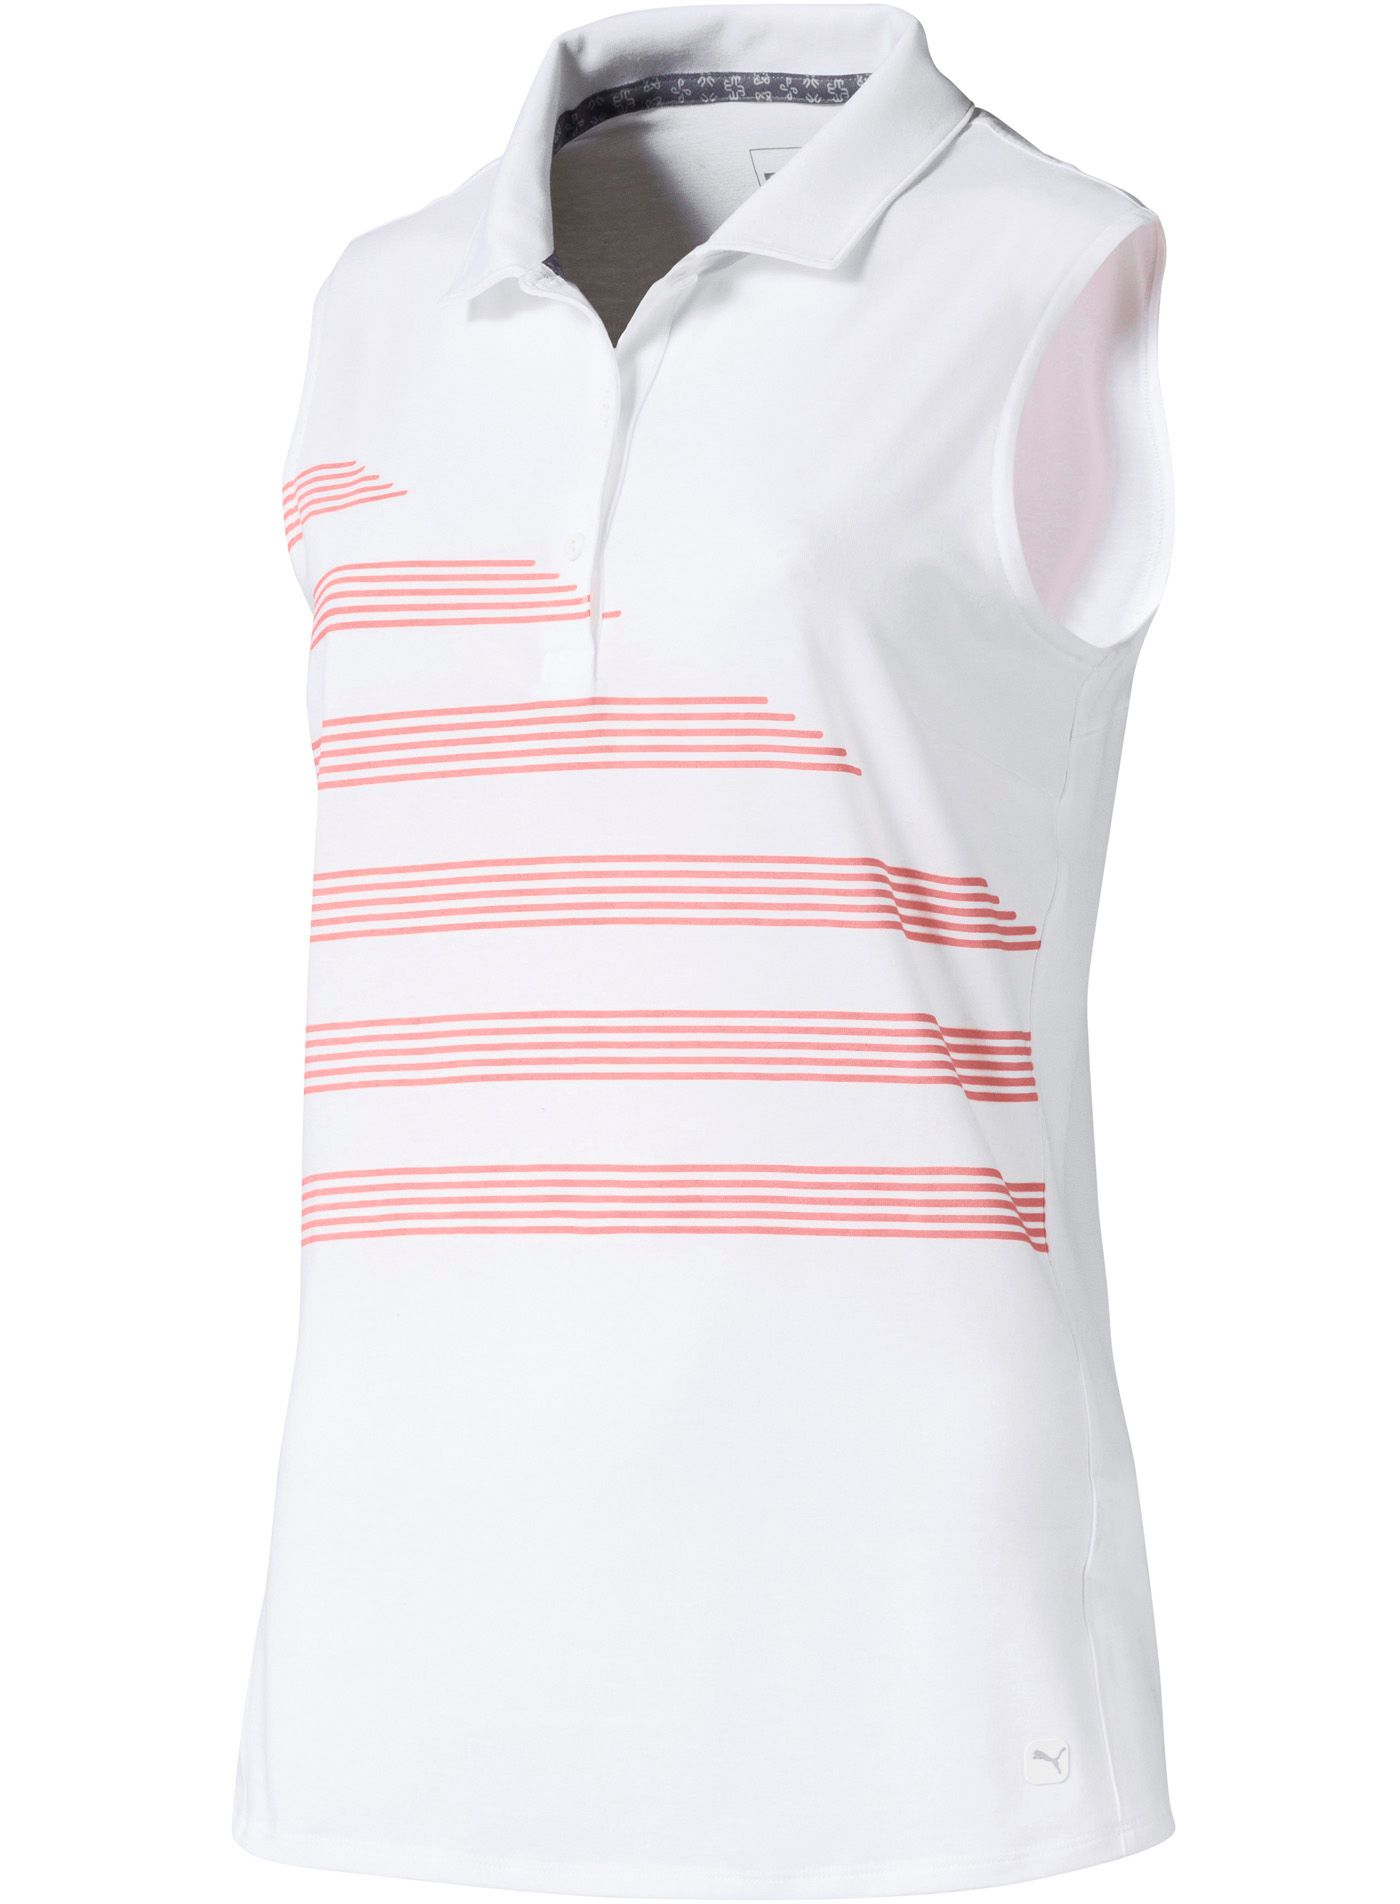 PUMA Women's Step Stripe Sleeveless Golf Polo